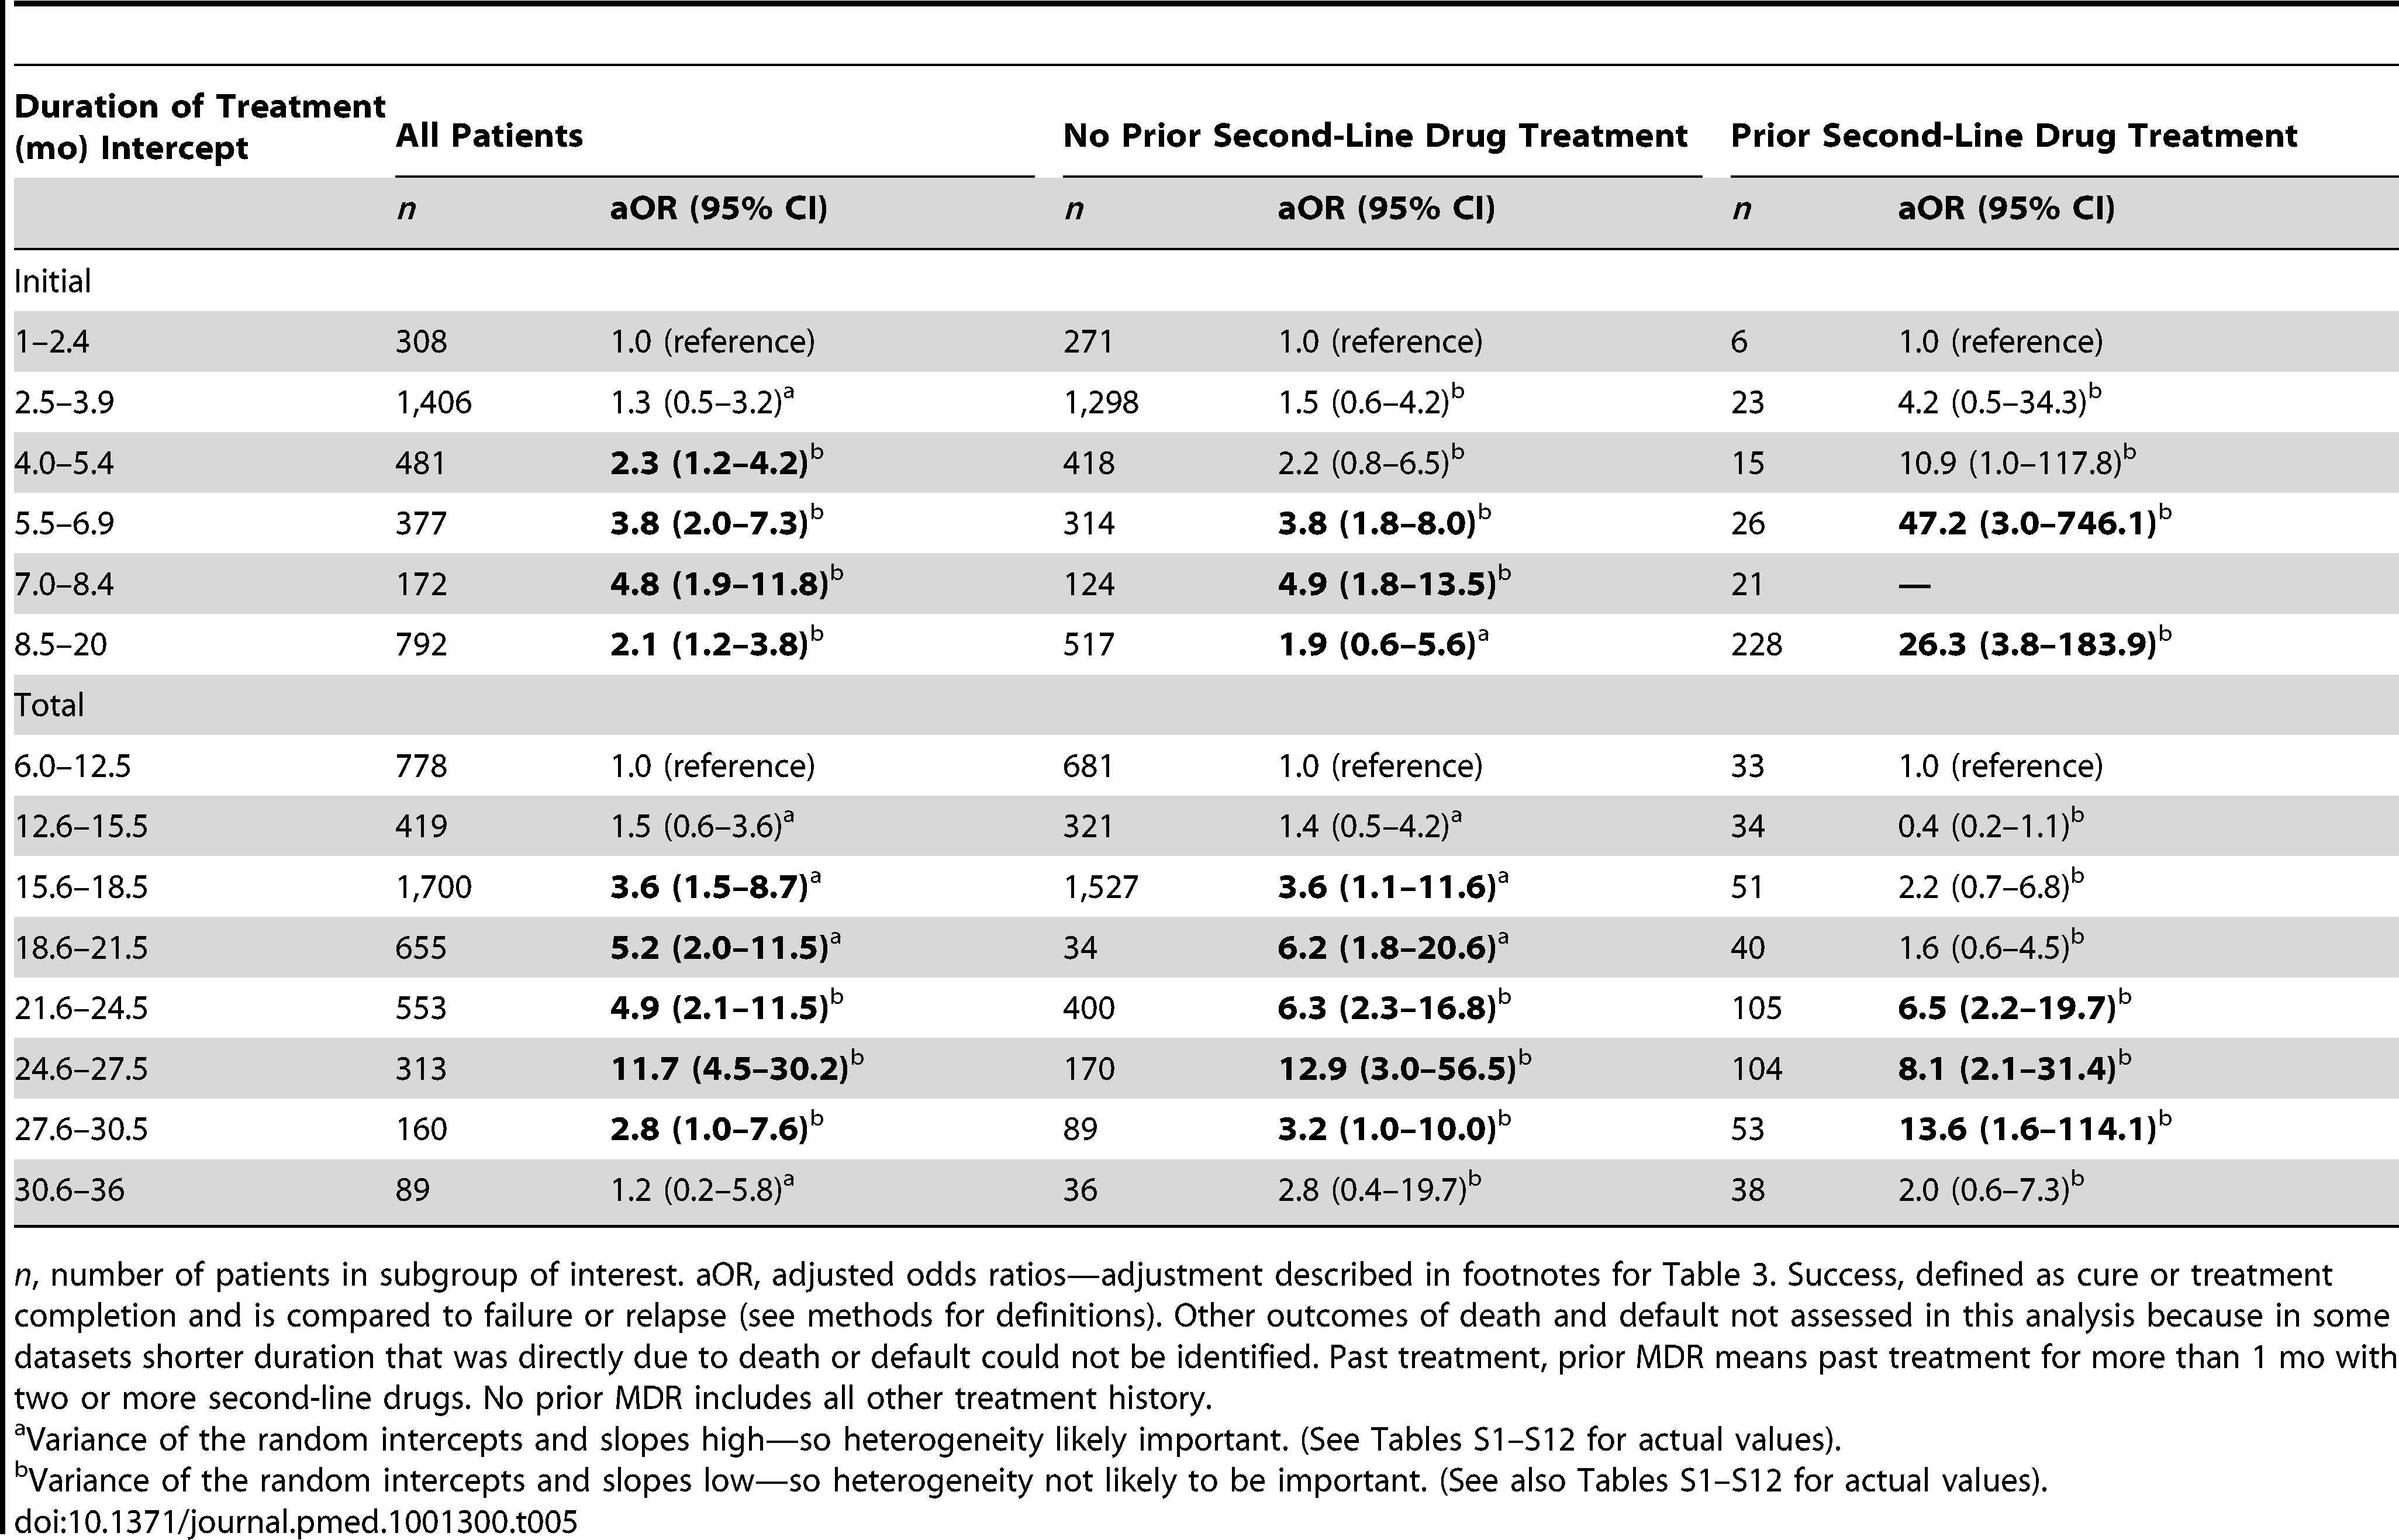 Association of duration of treatment with success versus failure/relapse—patients grouped by treatment history.